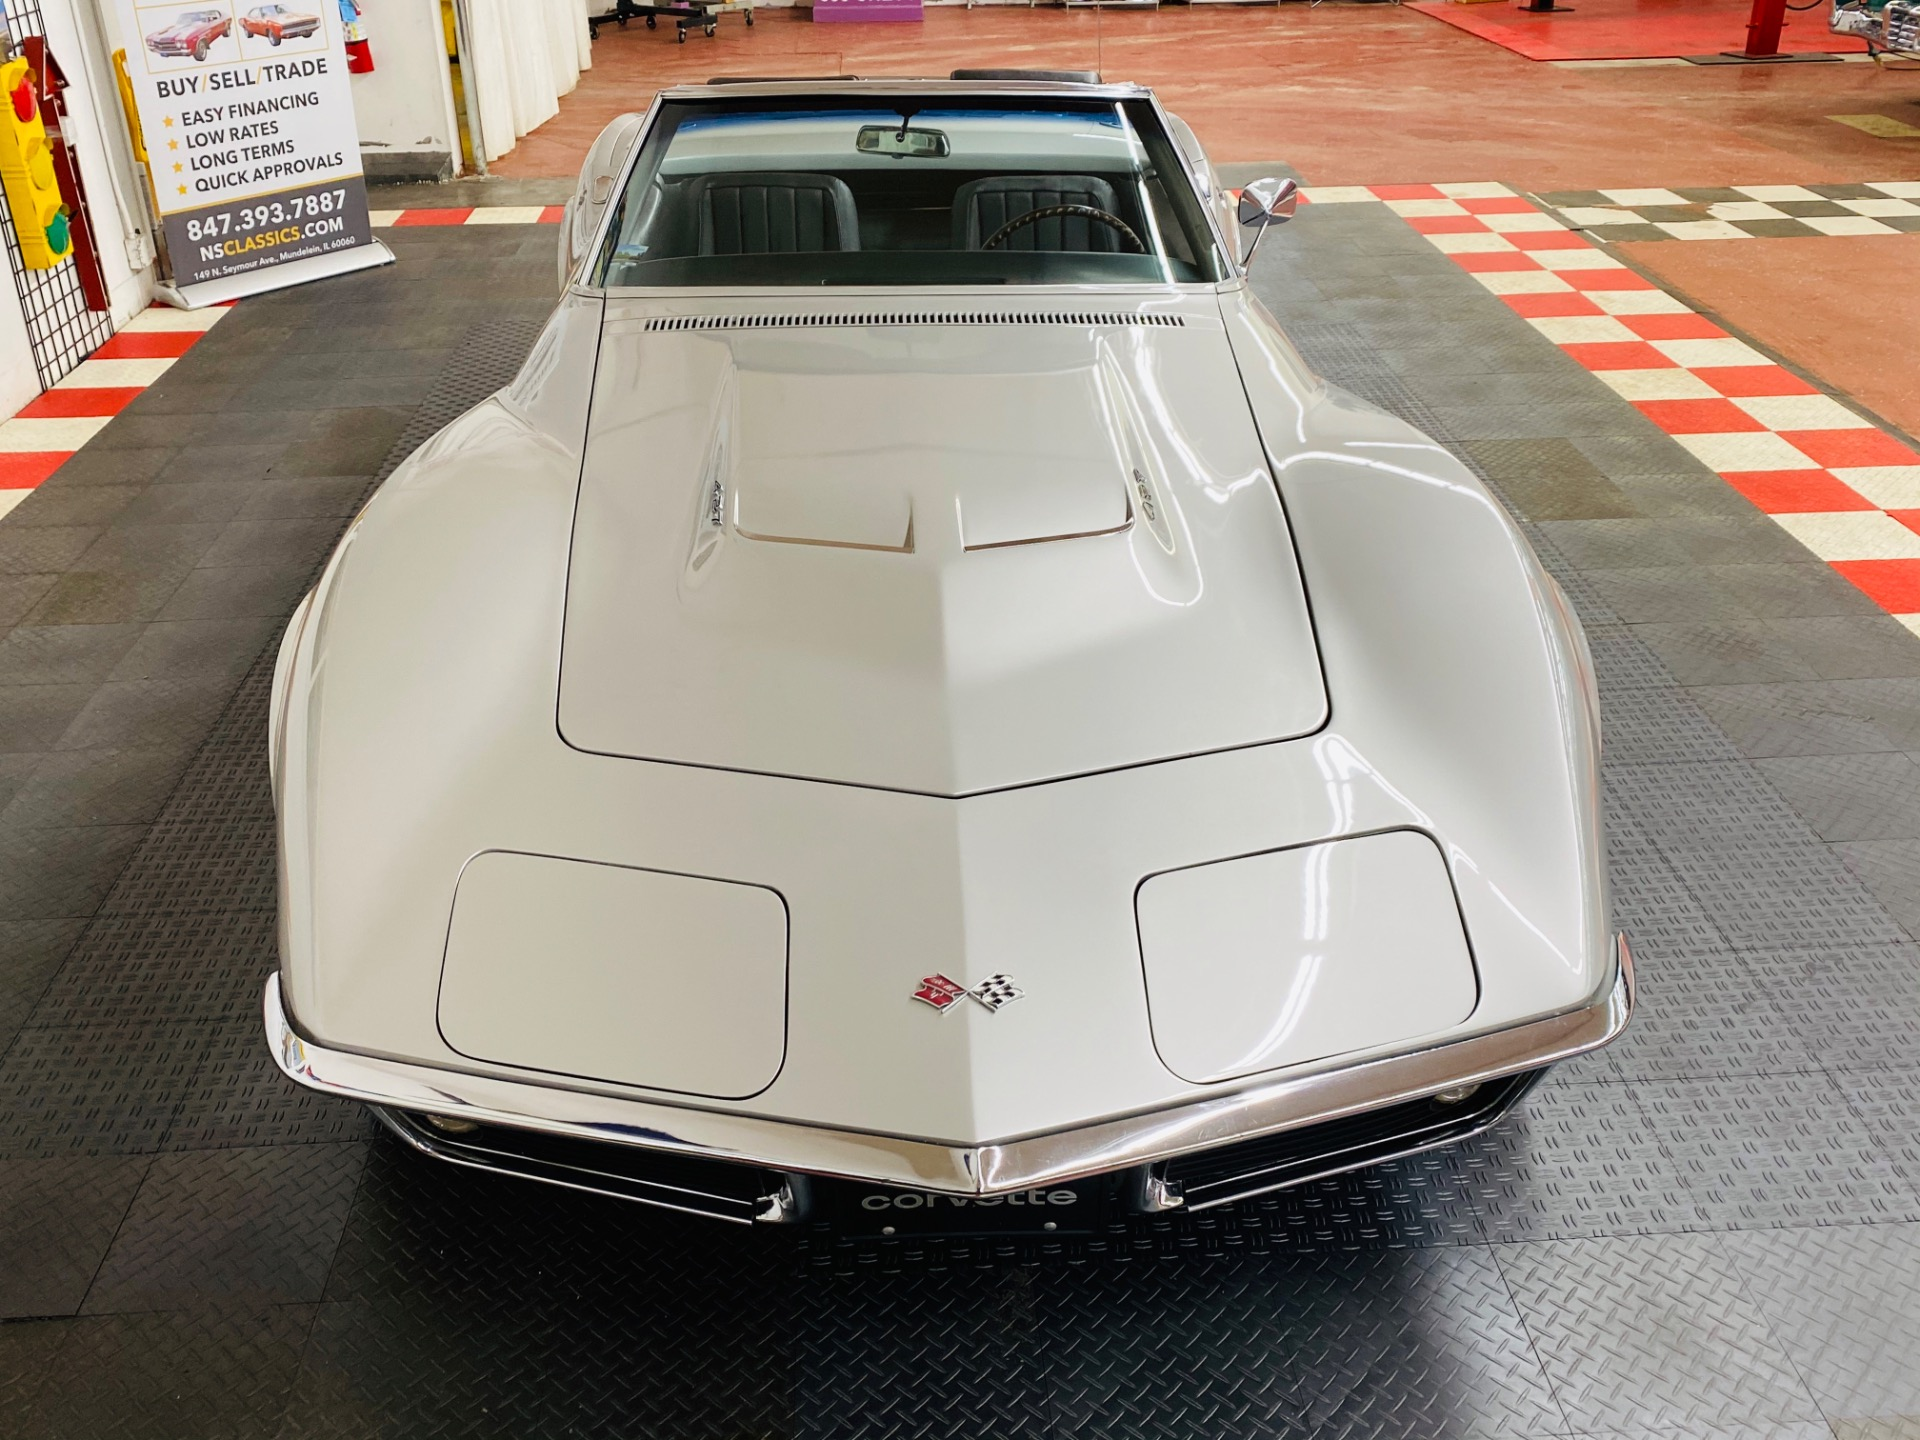 Used 1968 Chevrolet Corvette - TWO TOP CONVERTIBLE - 427 390HP - NUMBERS MATCHING -SEE VIDEO- | Mundelein, IL